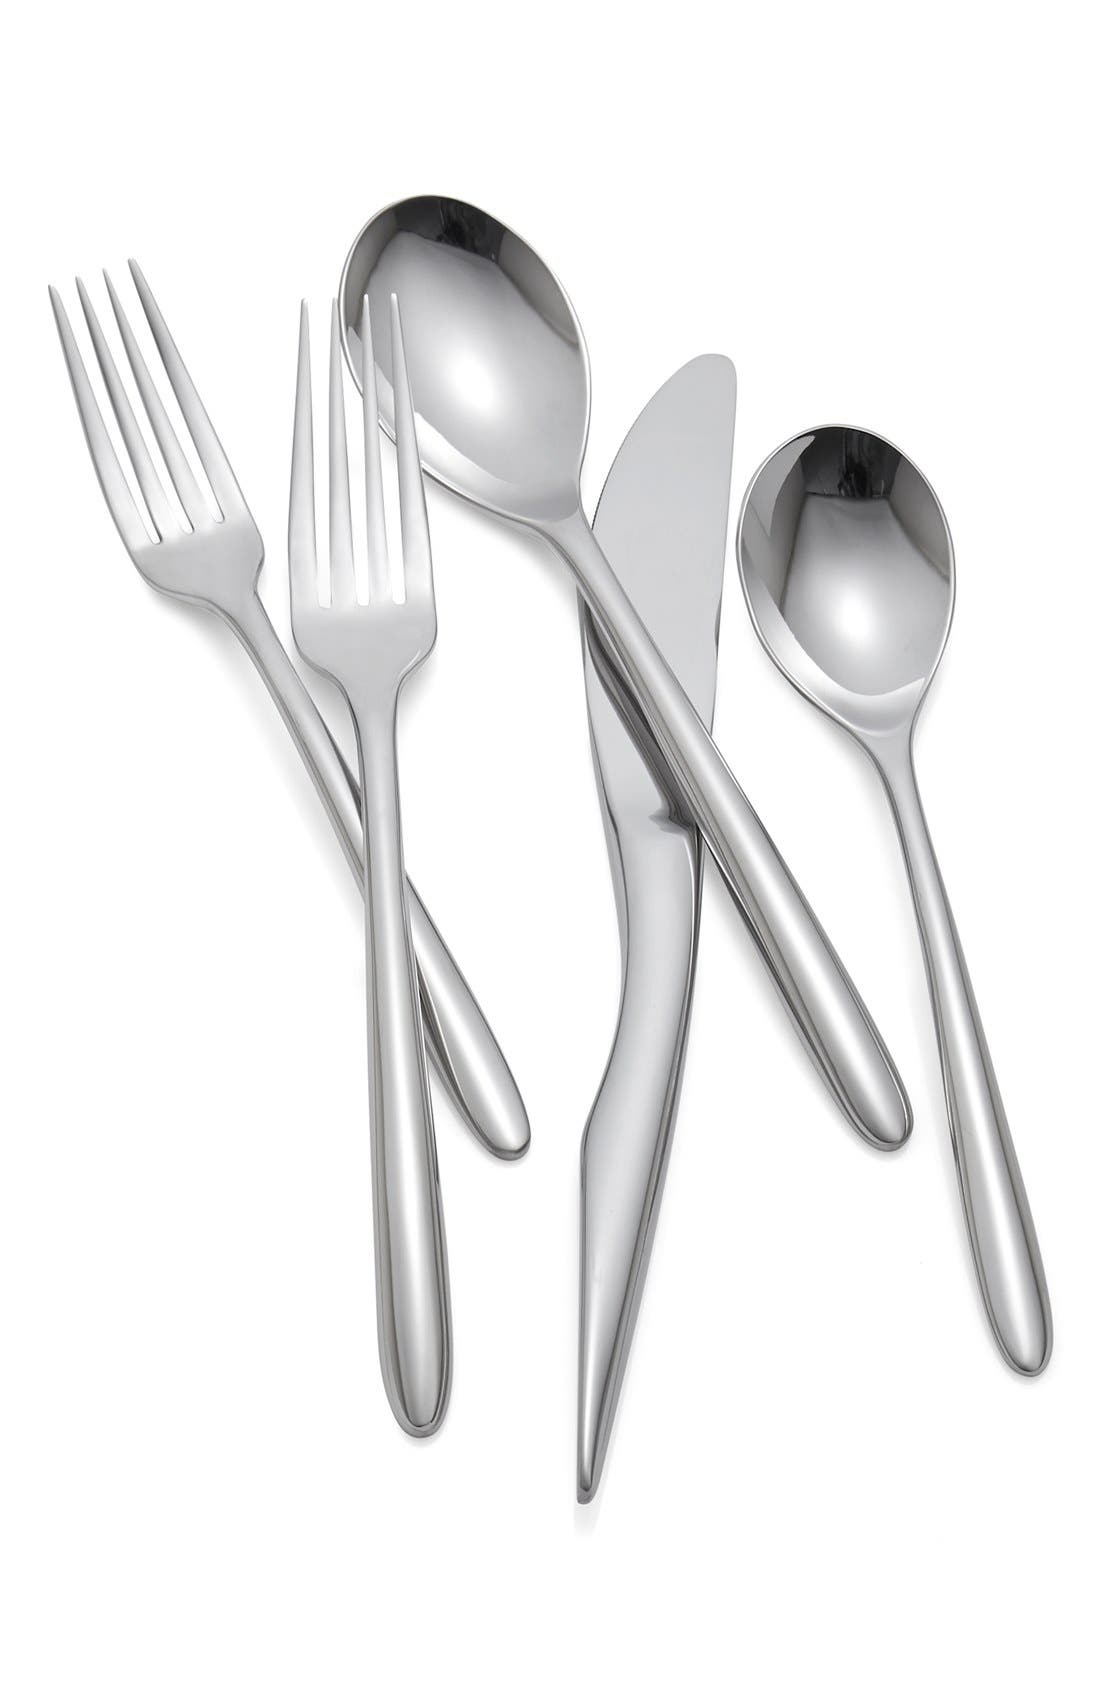 'Dune' 5-Piece Stainless Steel Table Setting,                             Main thumbnail 1, color,                             040